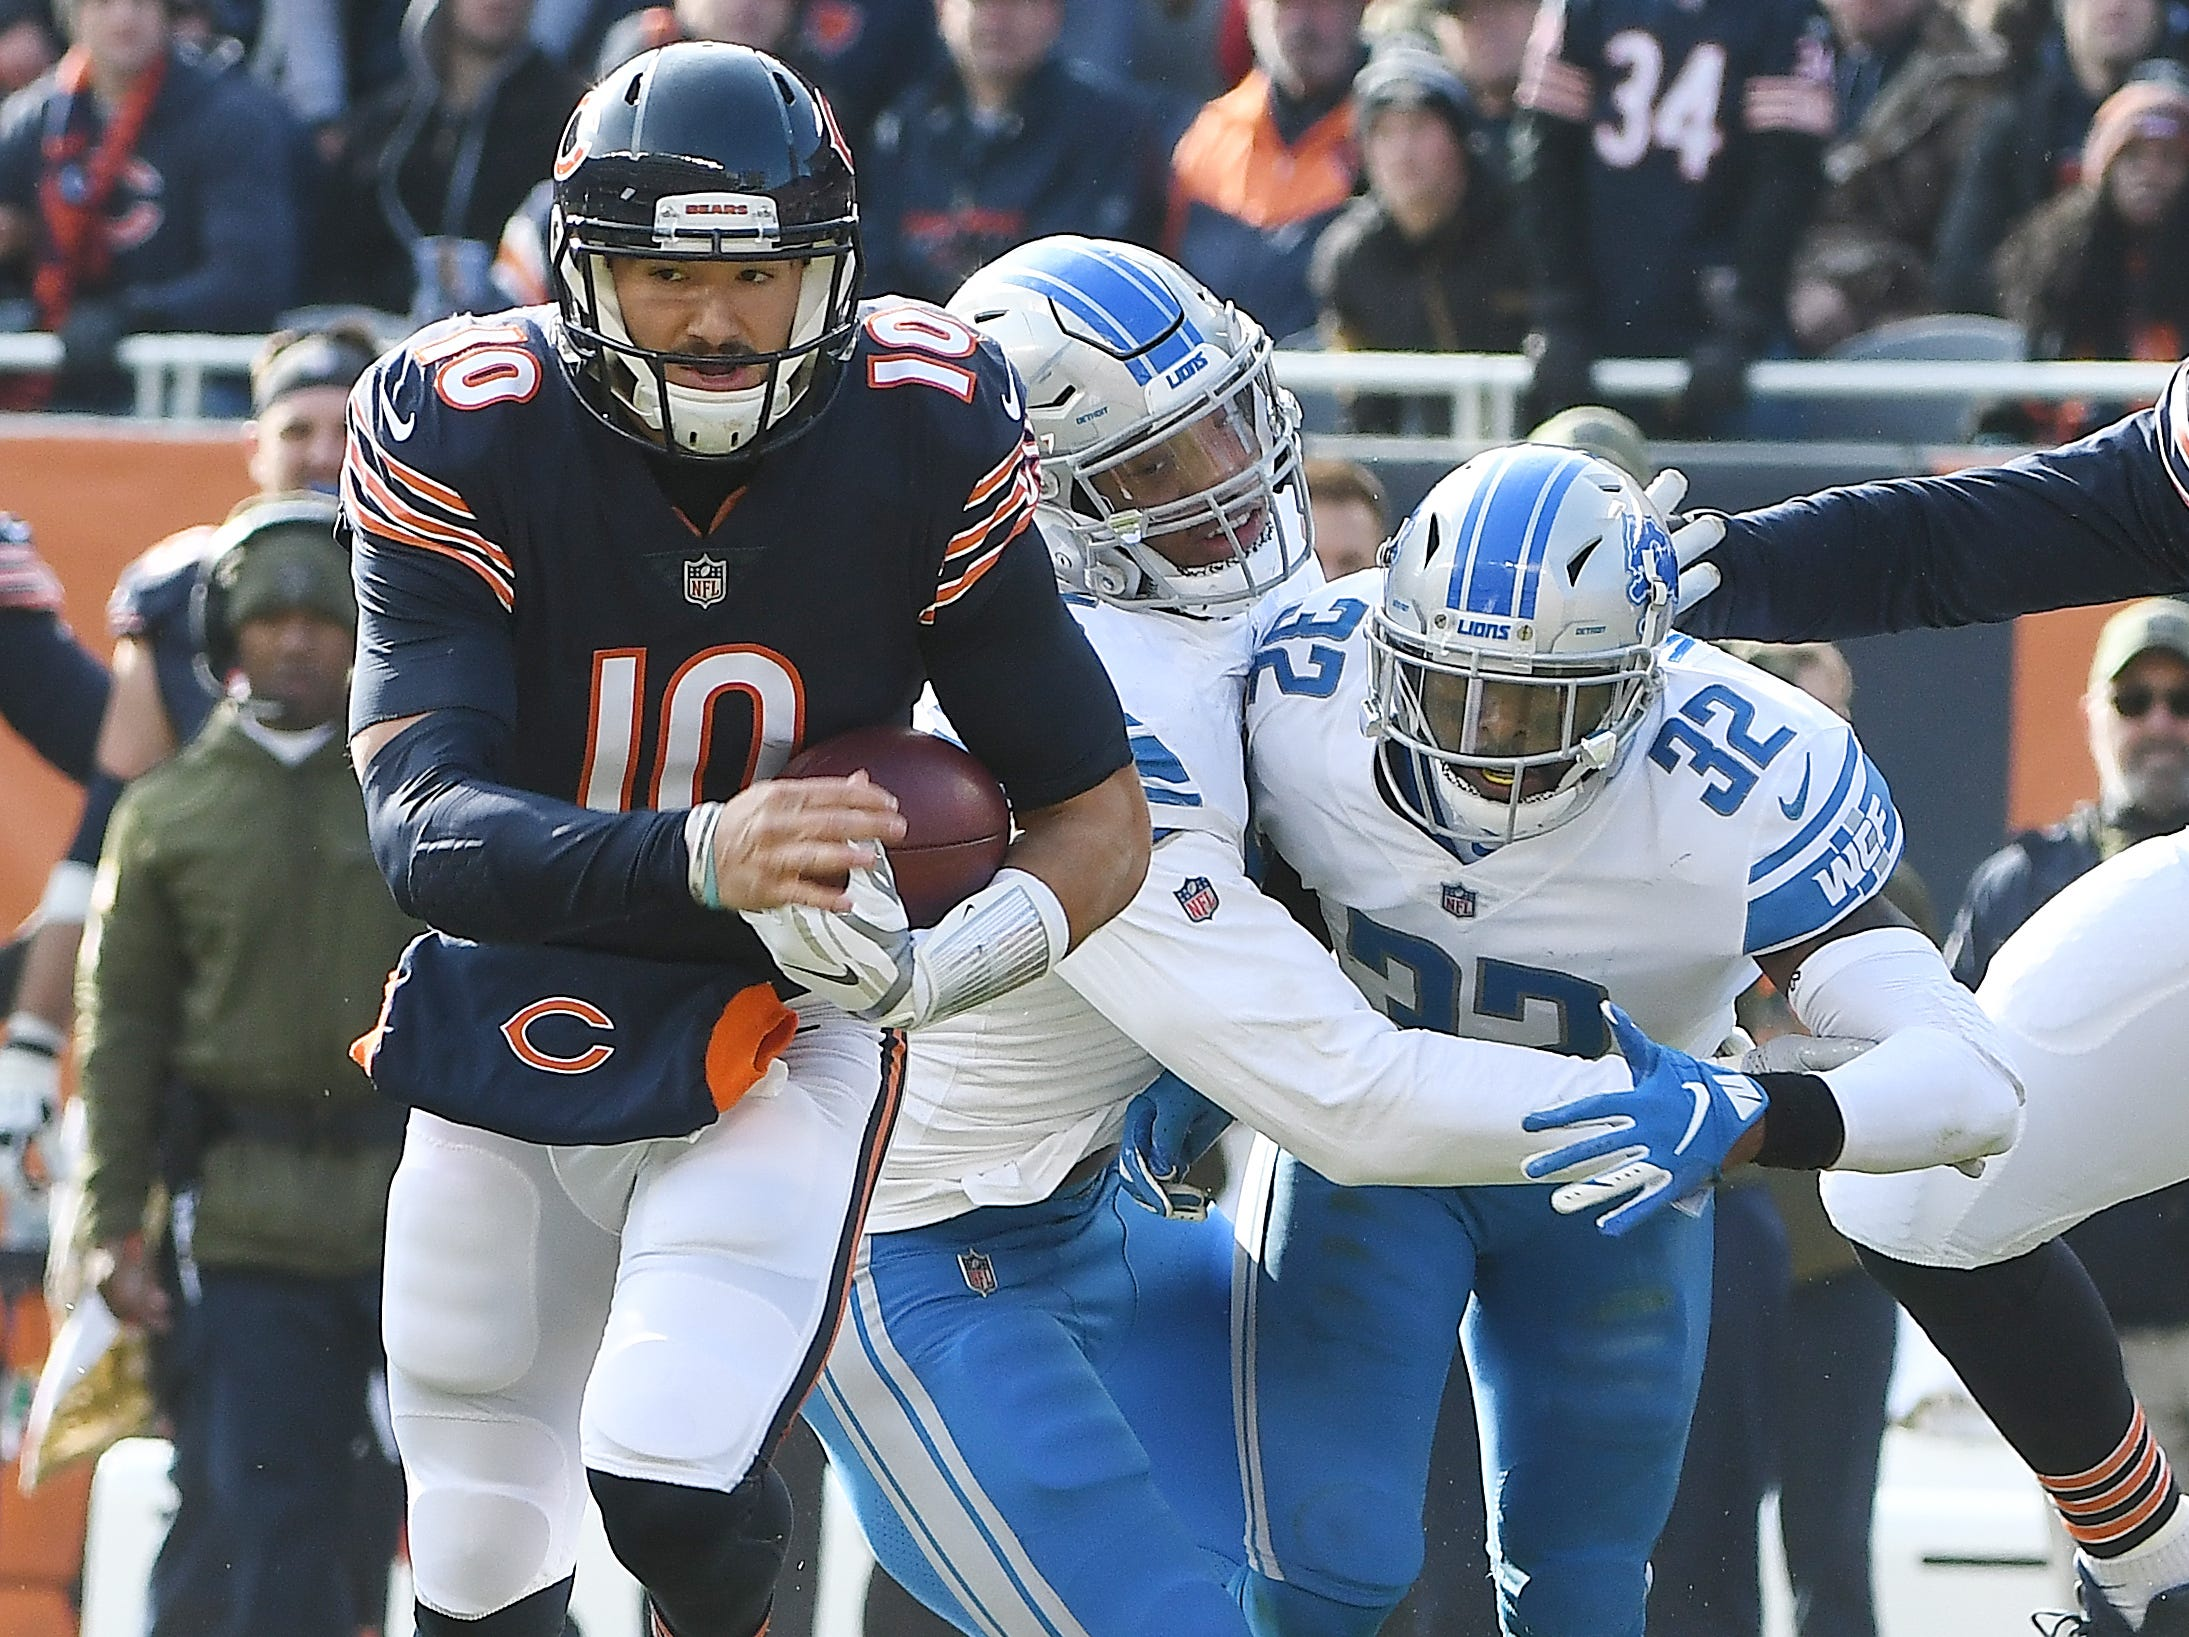 Lions' Romeo Okwara and Tavon Wilson collide as Bears quarterback Mitchell Trubviwsky evades the Lions defense for a long gain in the second quarter.